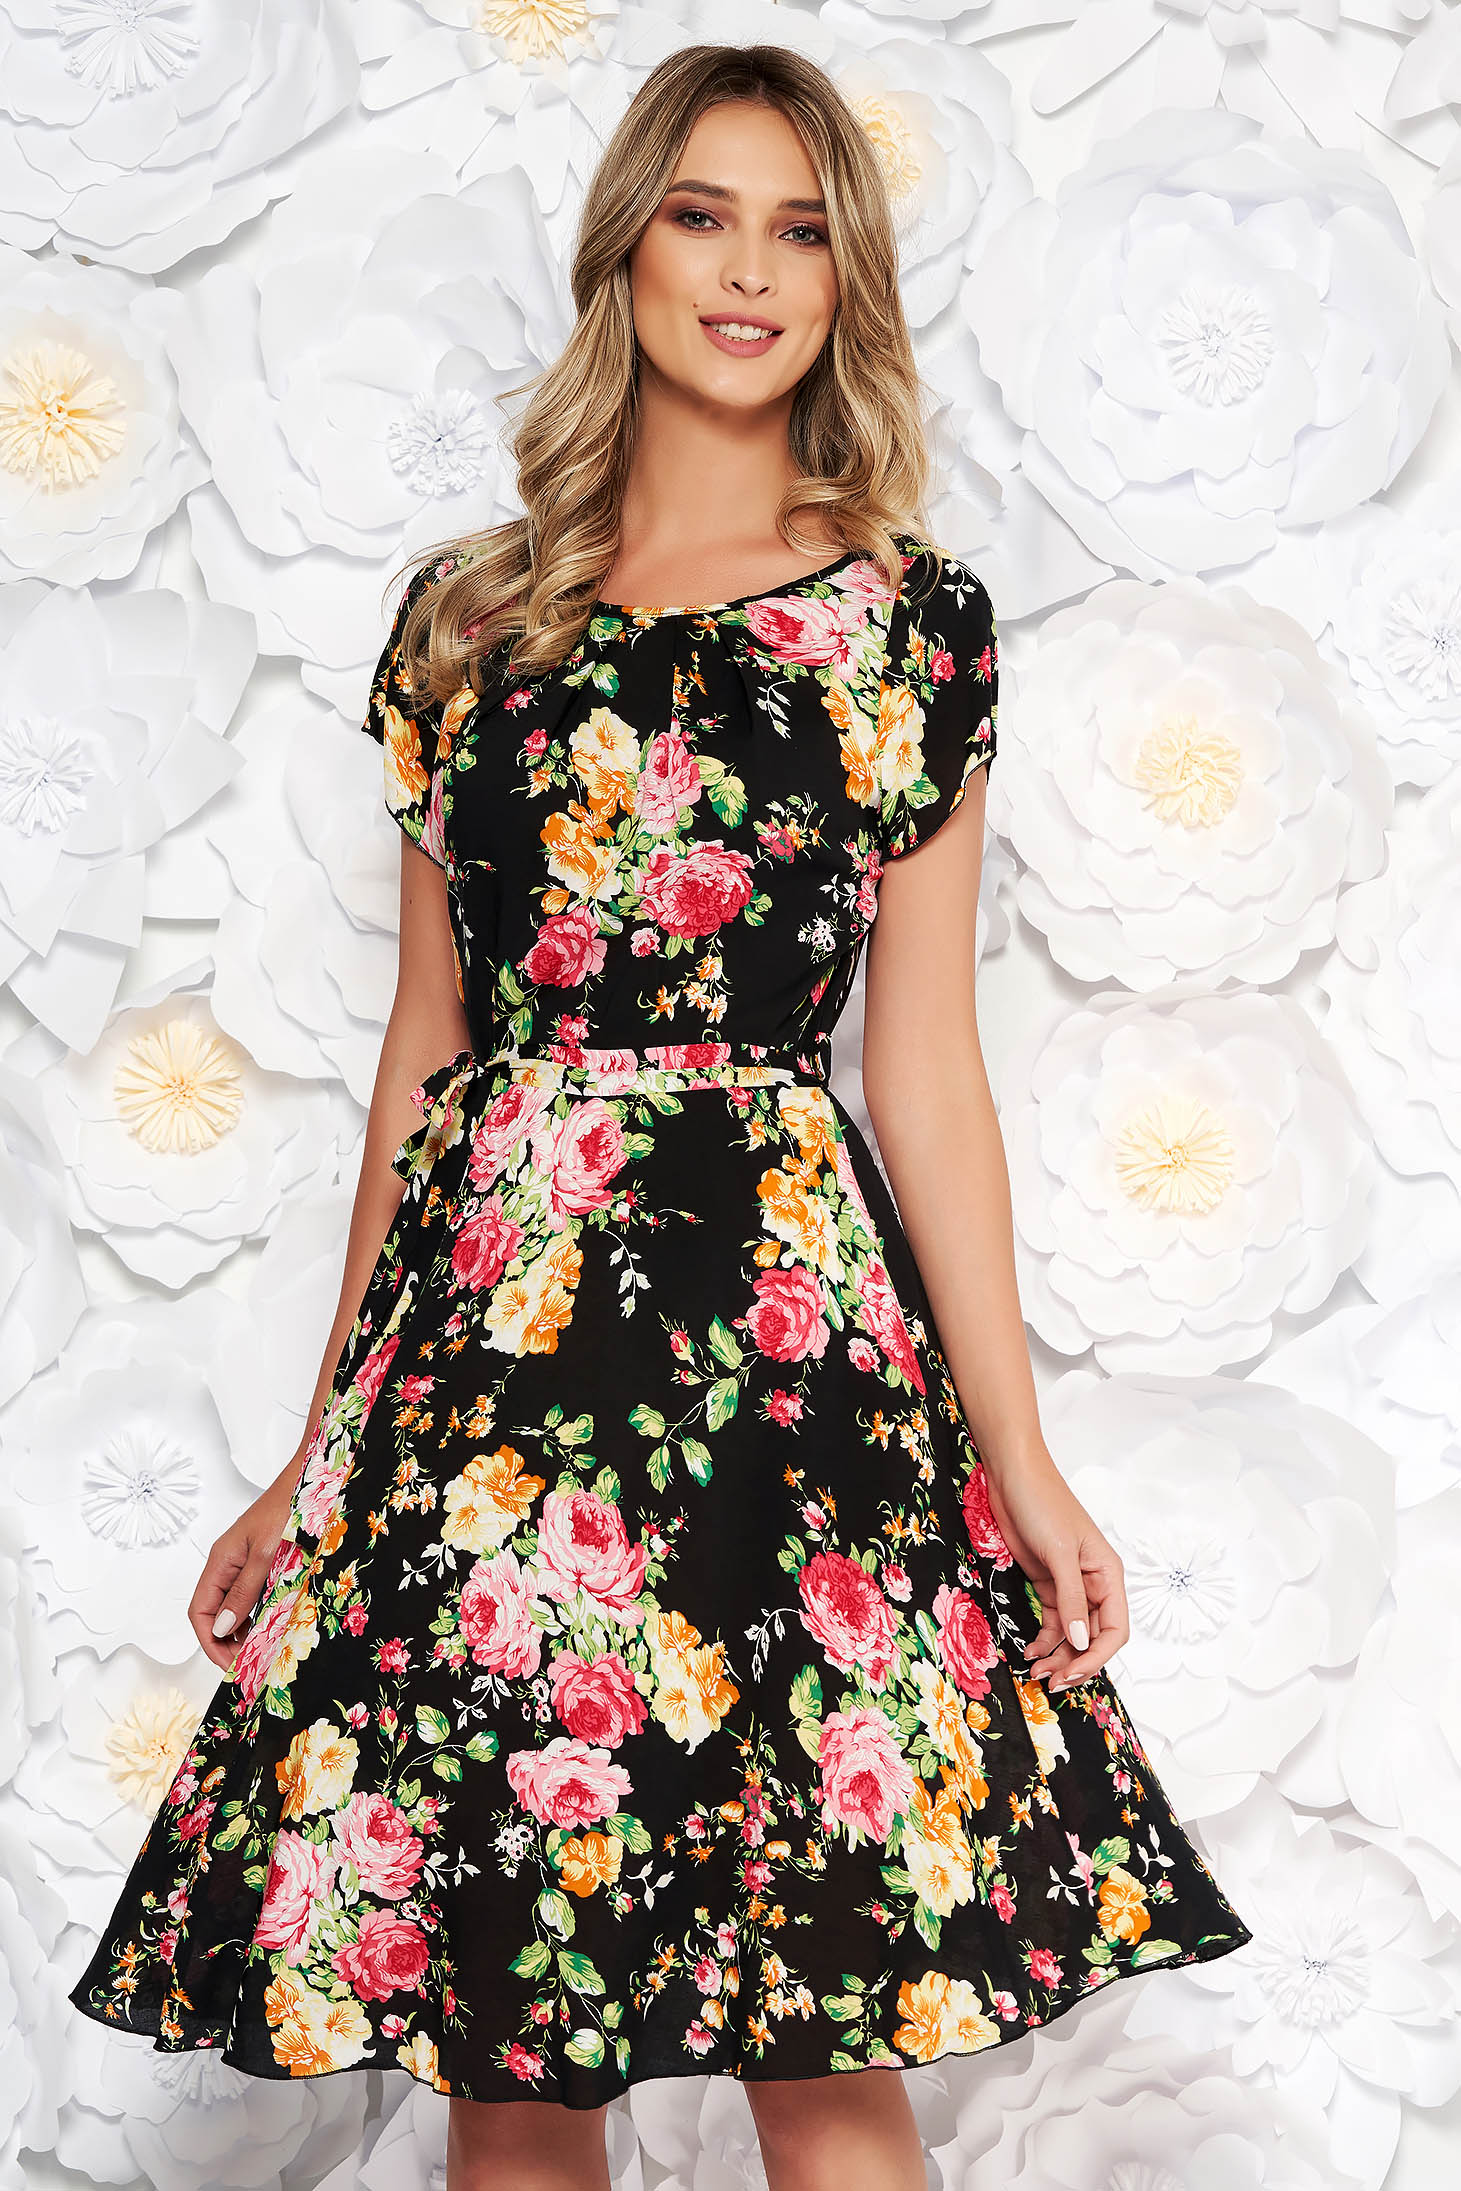 Black daily cloche dress short sleeve thin fabric with floral prints